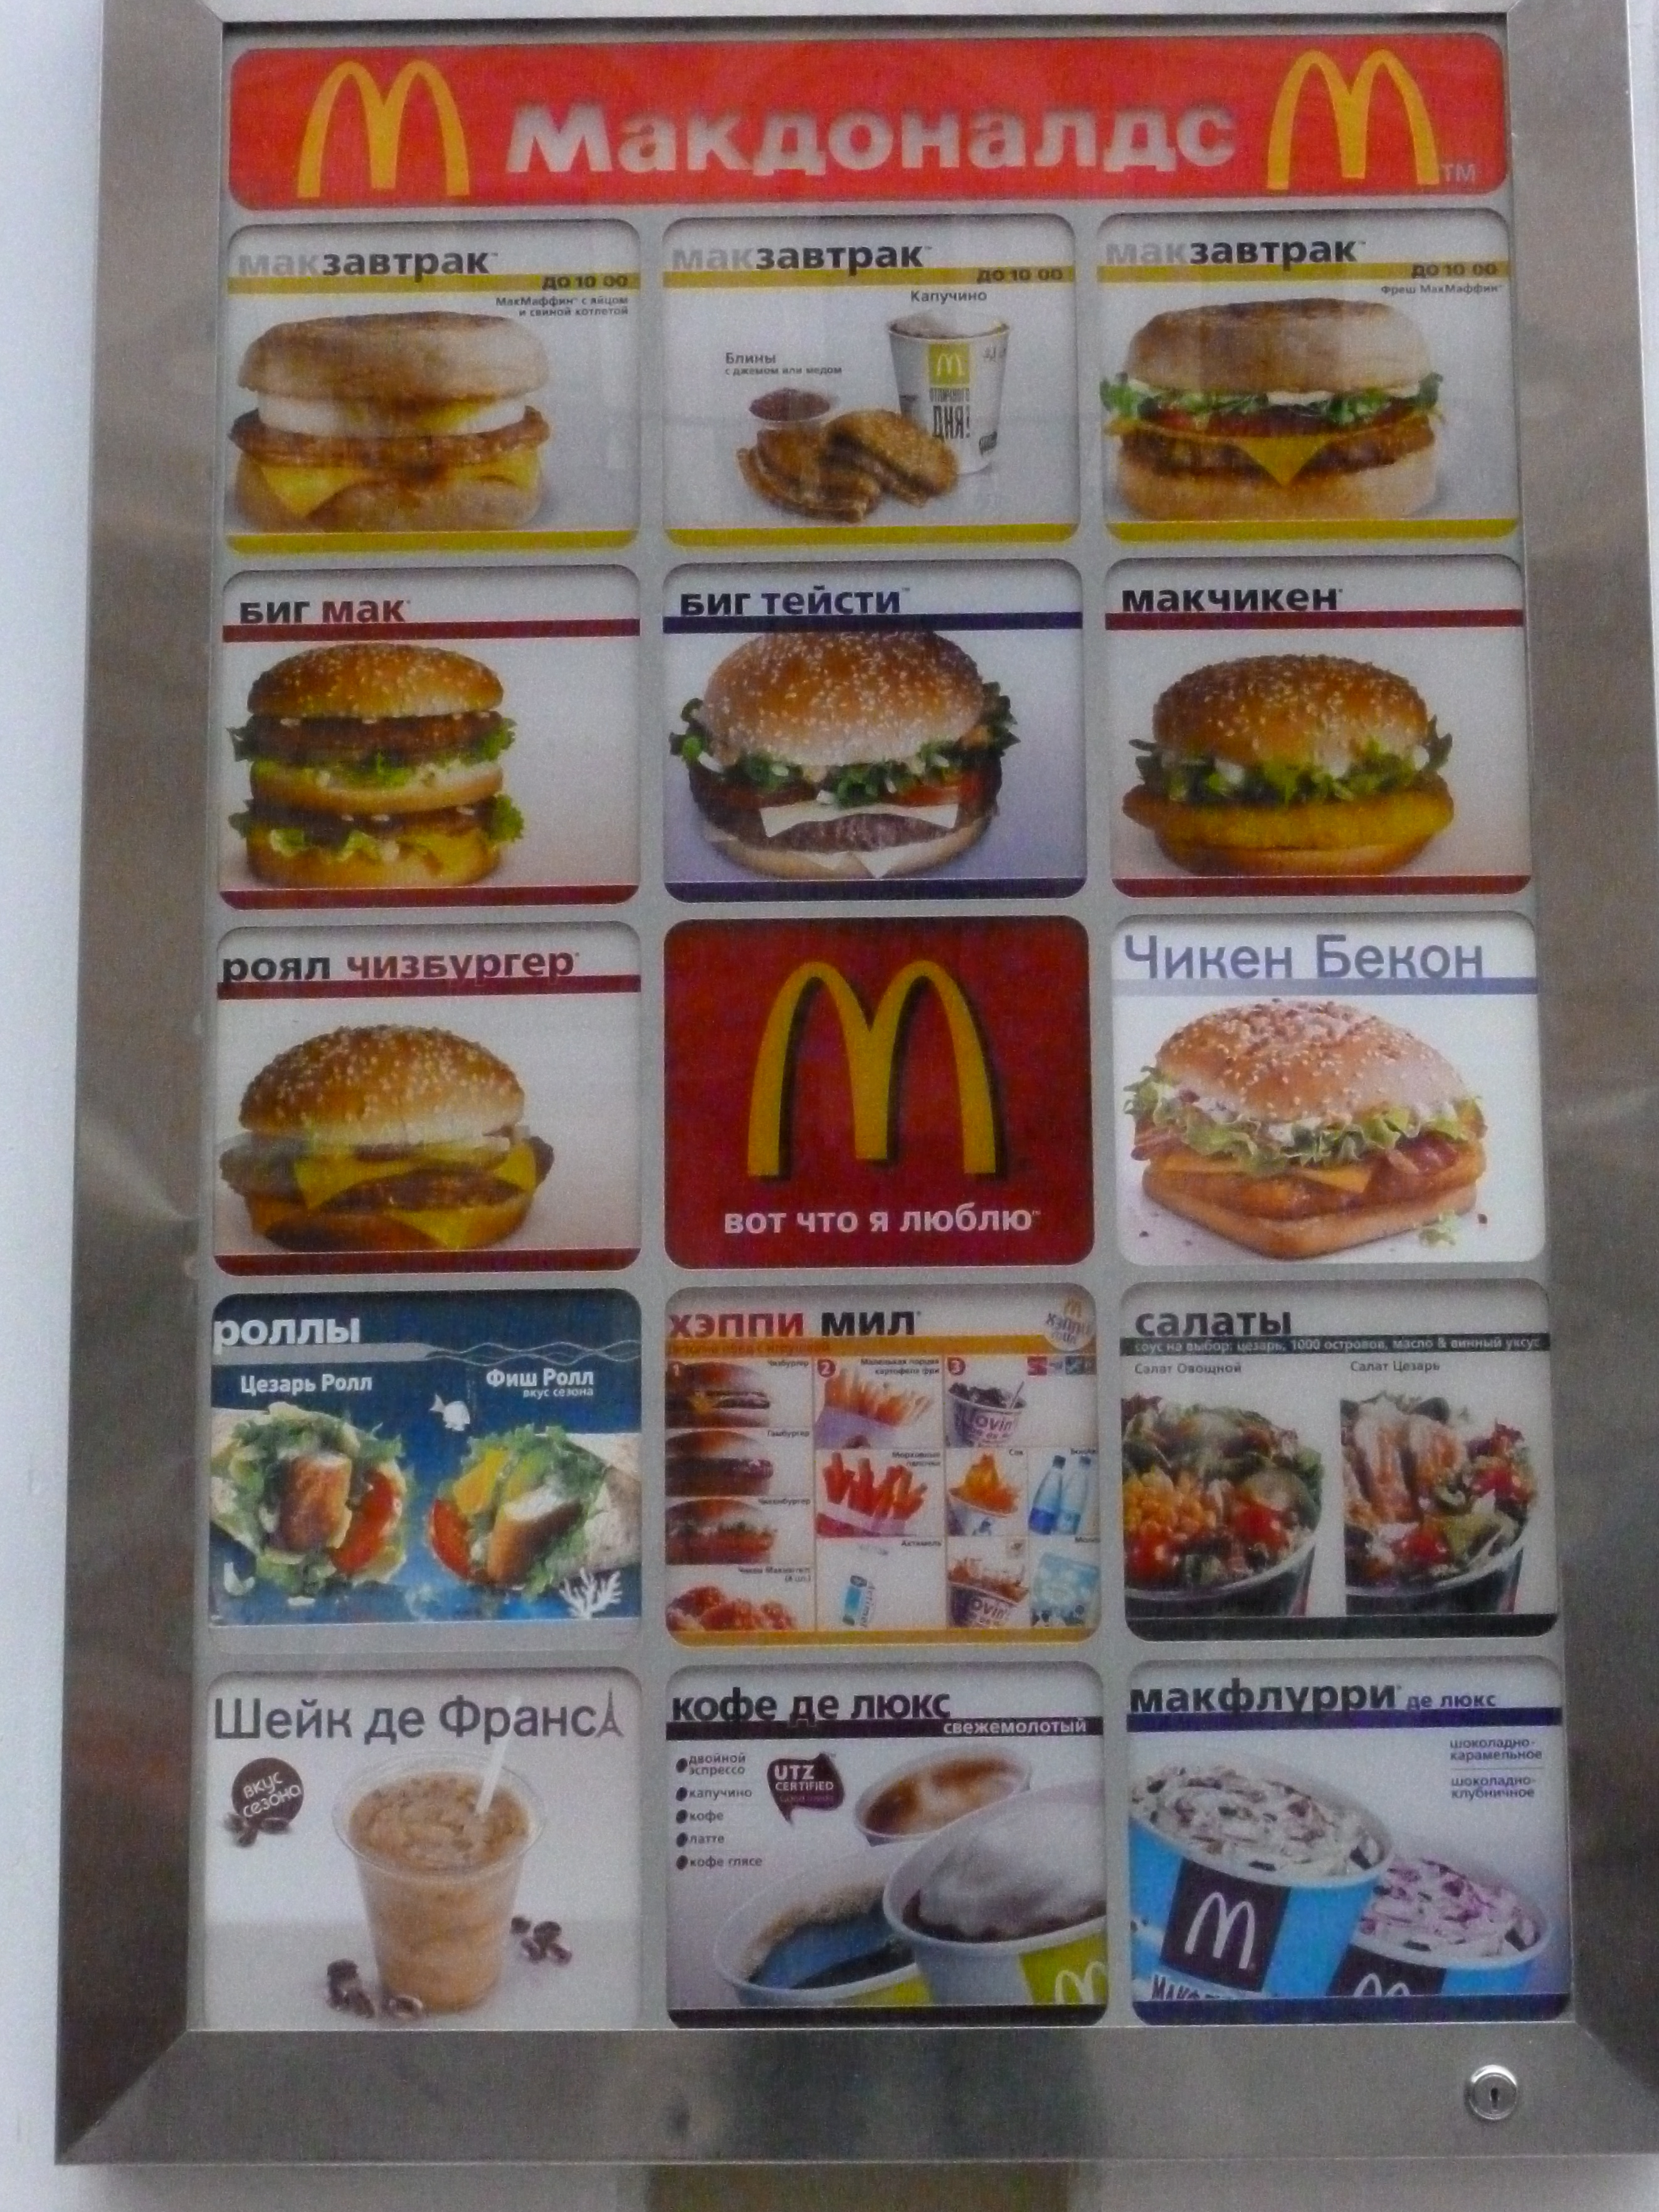 Mcdonalds why evolution is true mcdonalds publicscrutiny Image collections